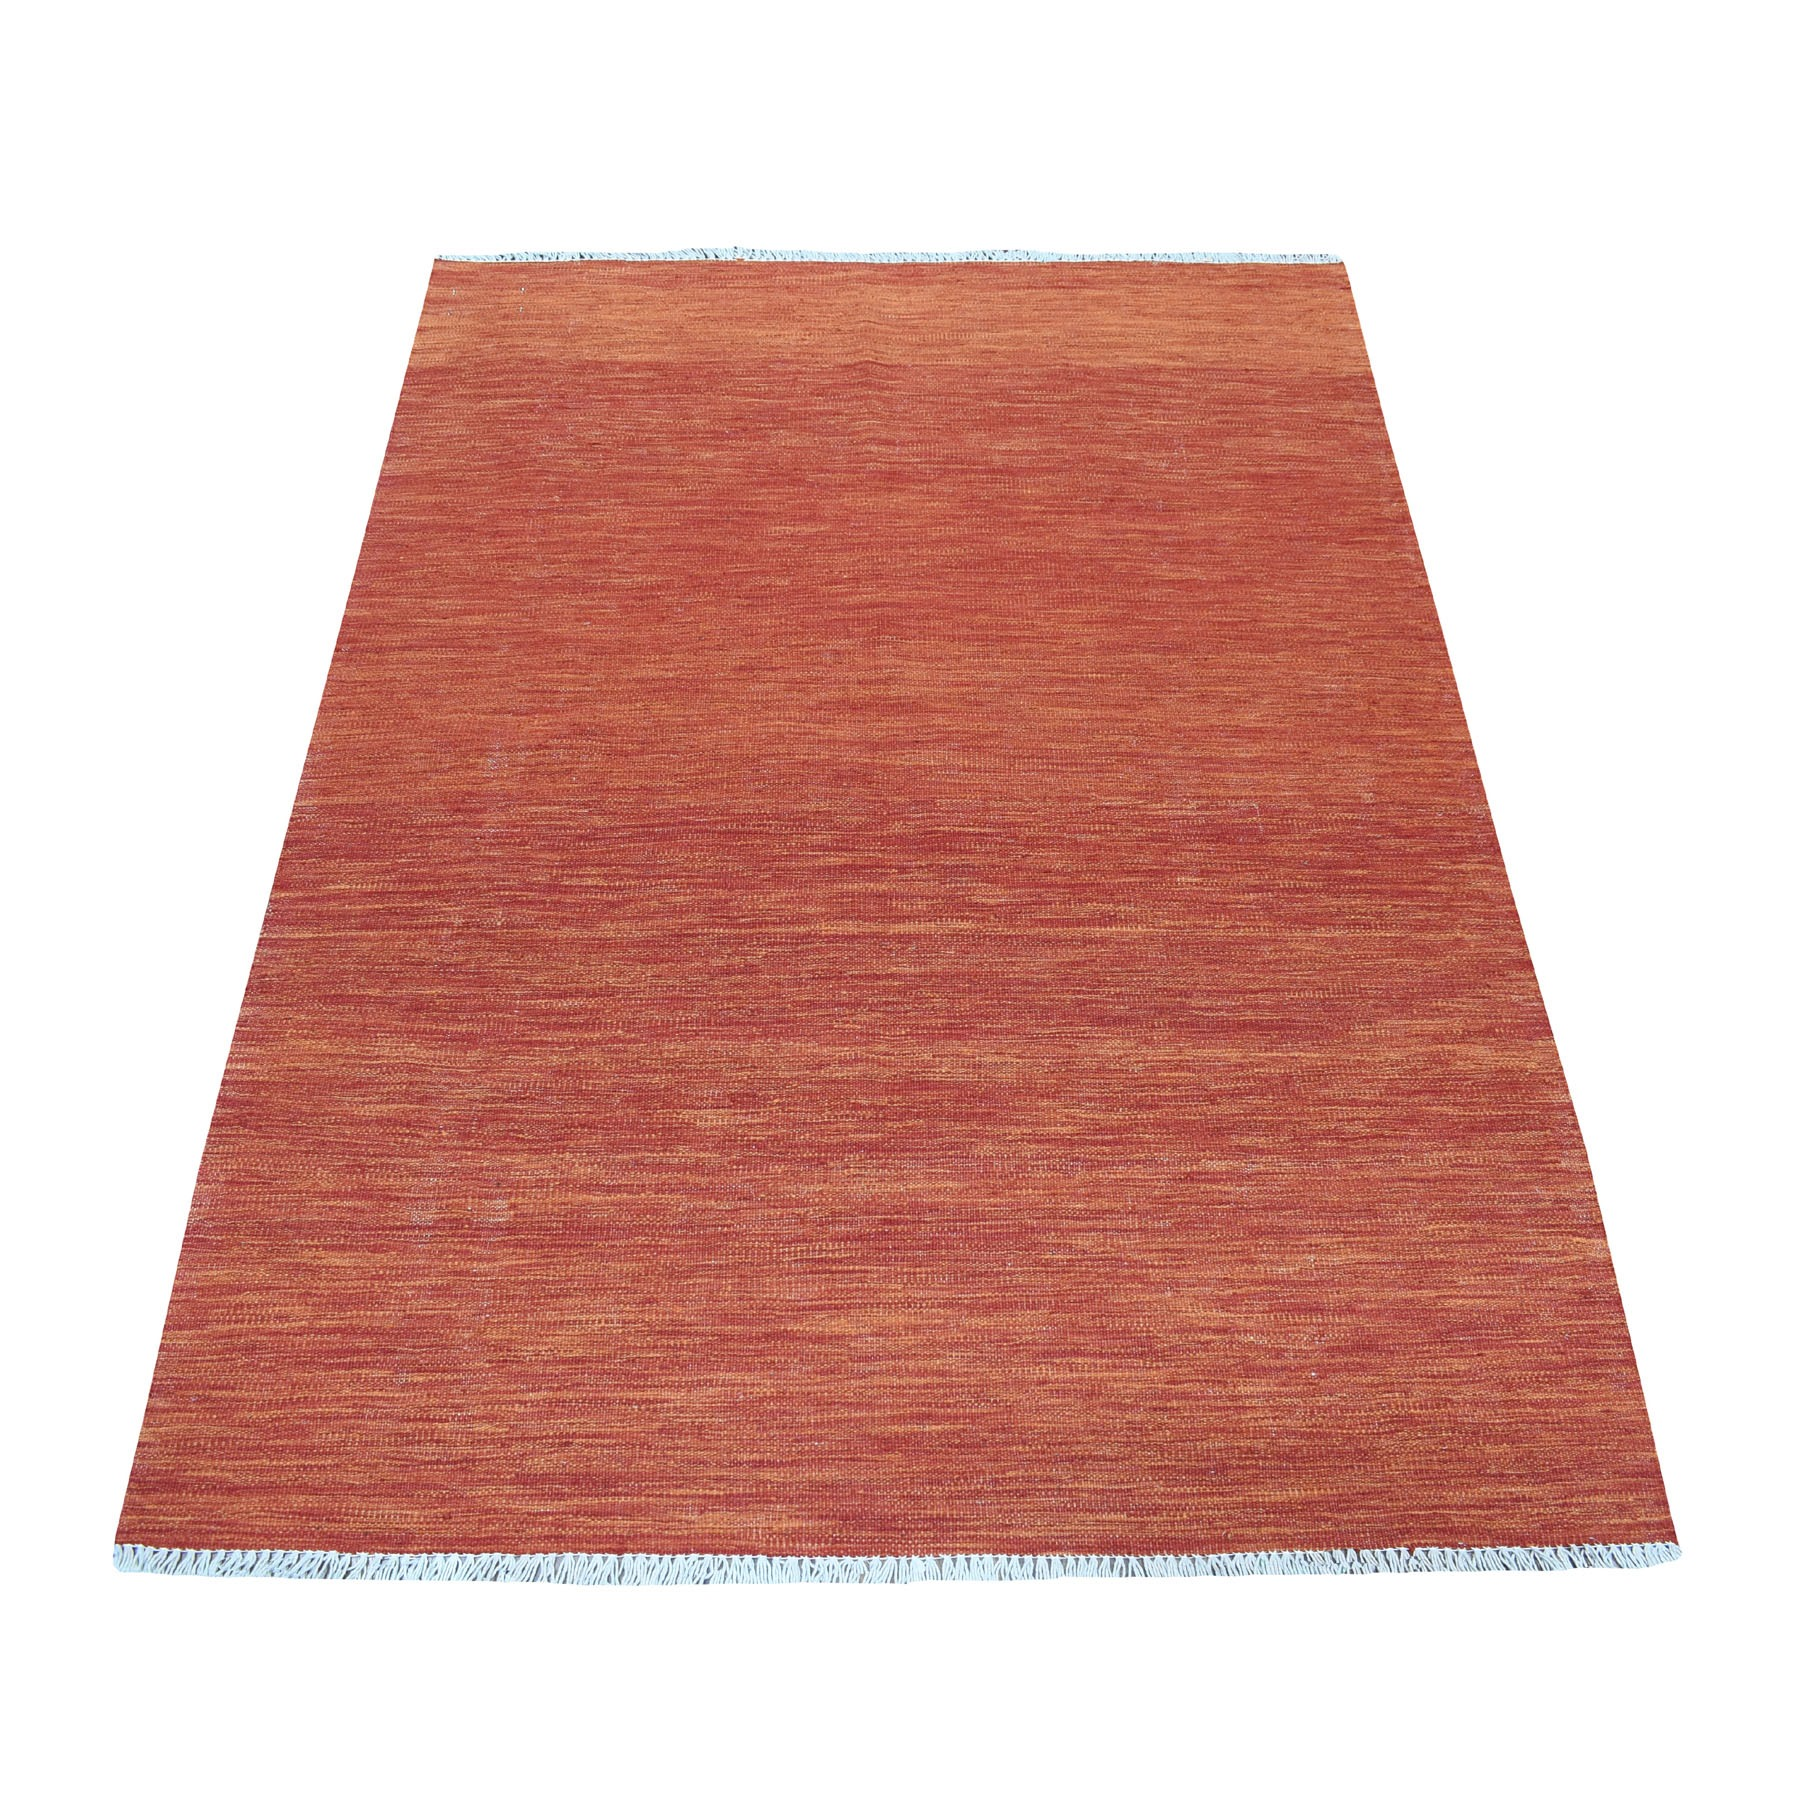 4-x5-8  Sunset Shades Reversible Kilim Pure Wool Hand Woven Oriental Rug